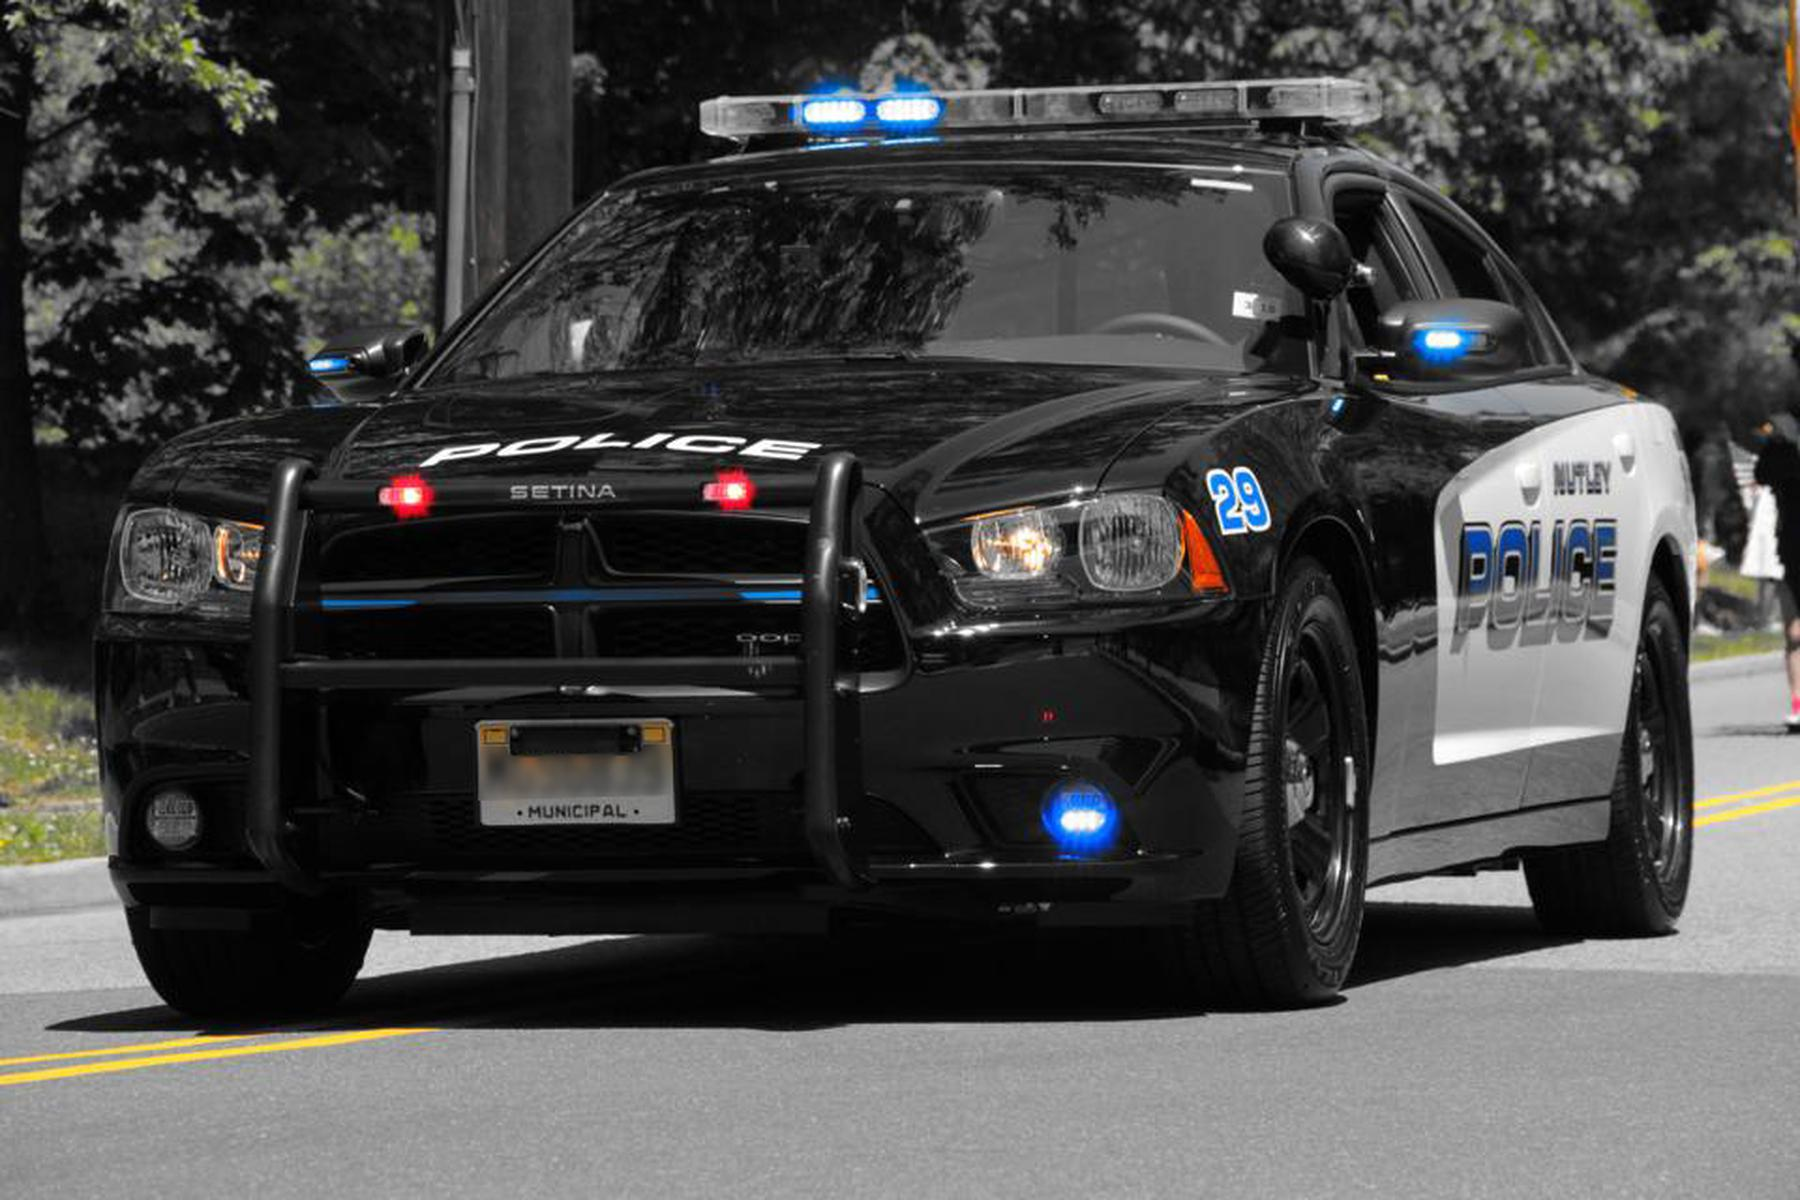 Nutley New Jersey Police Department